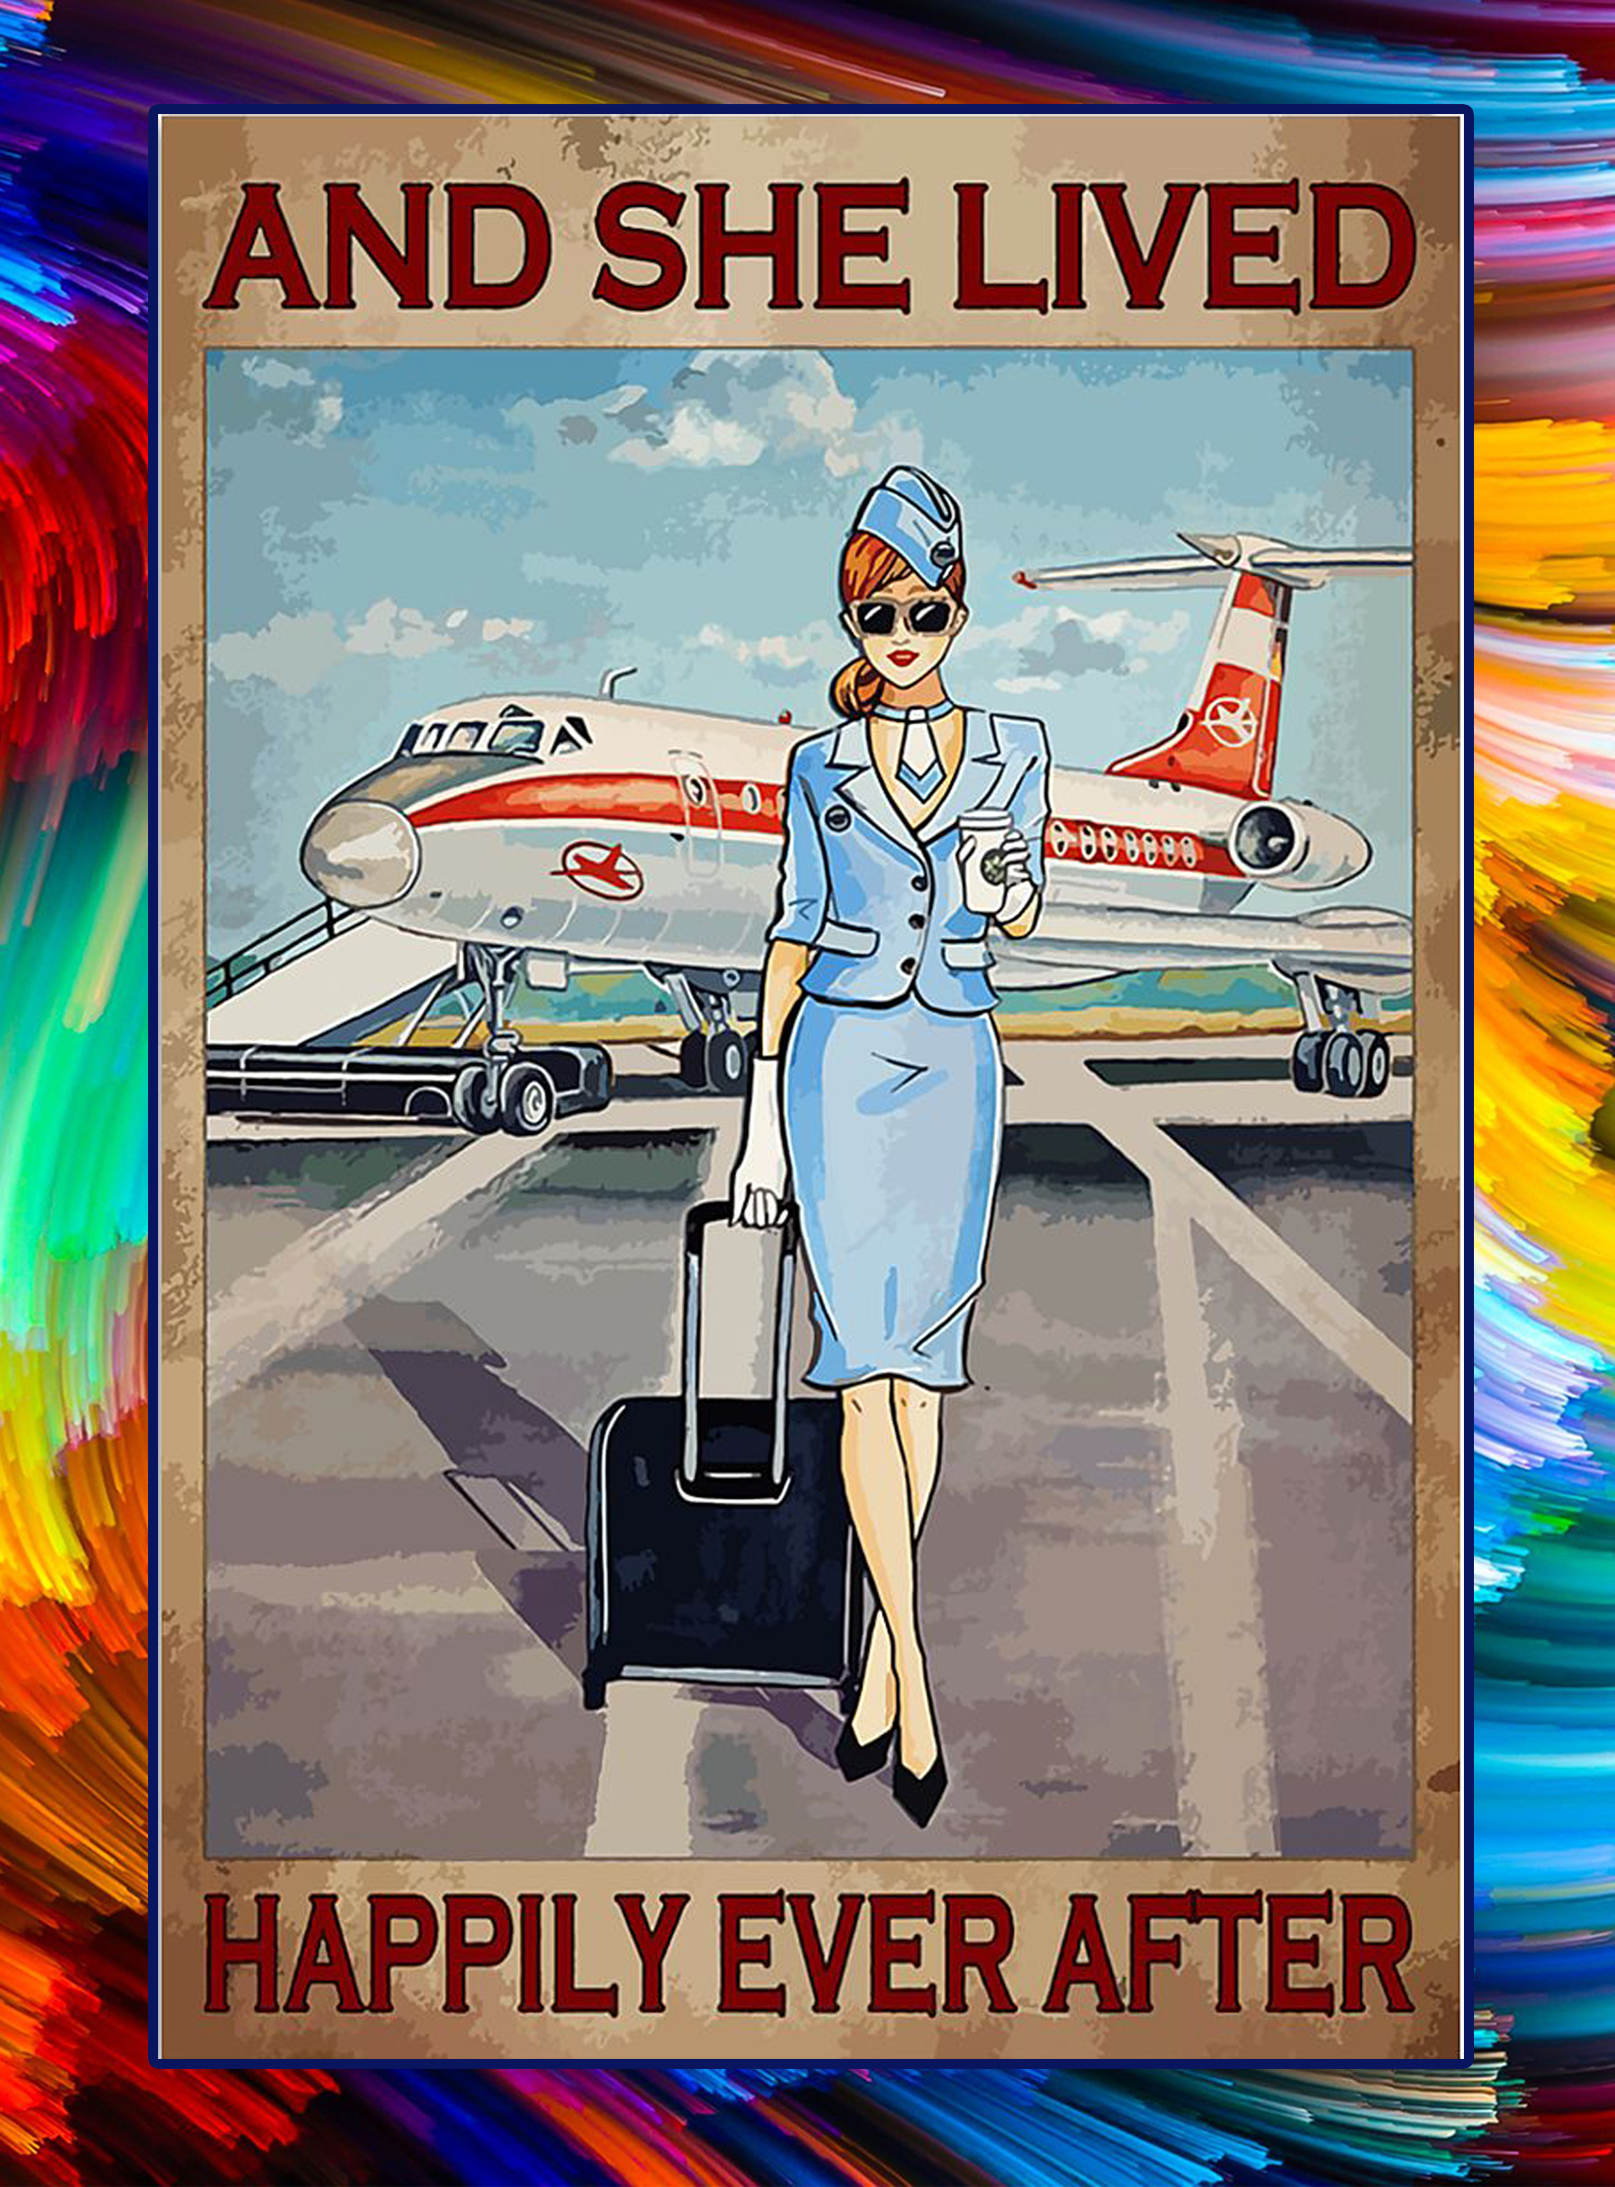 FLIGHT ATTENDANT And she lived happily ever after poster - A3